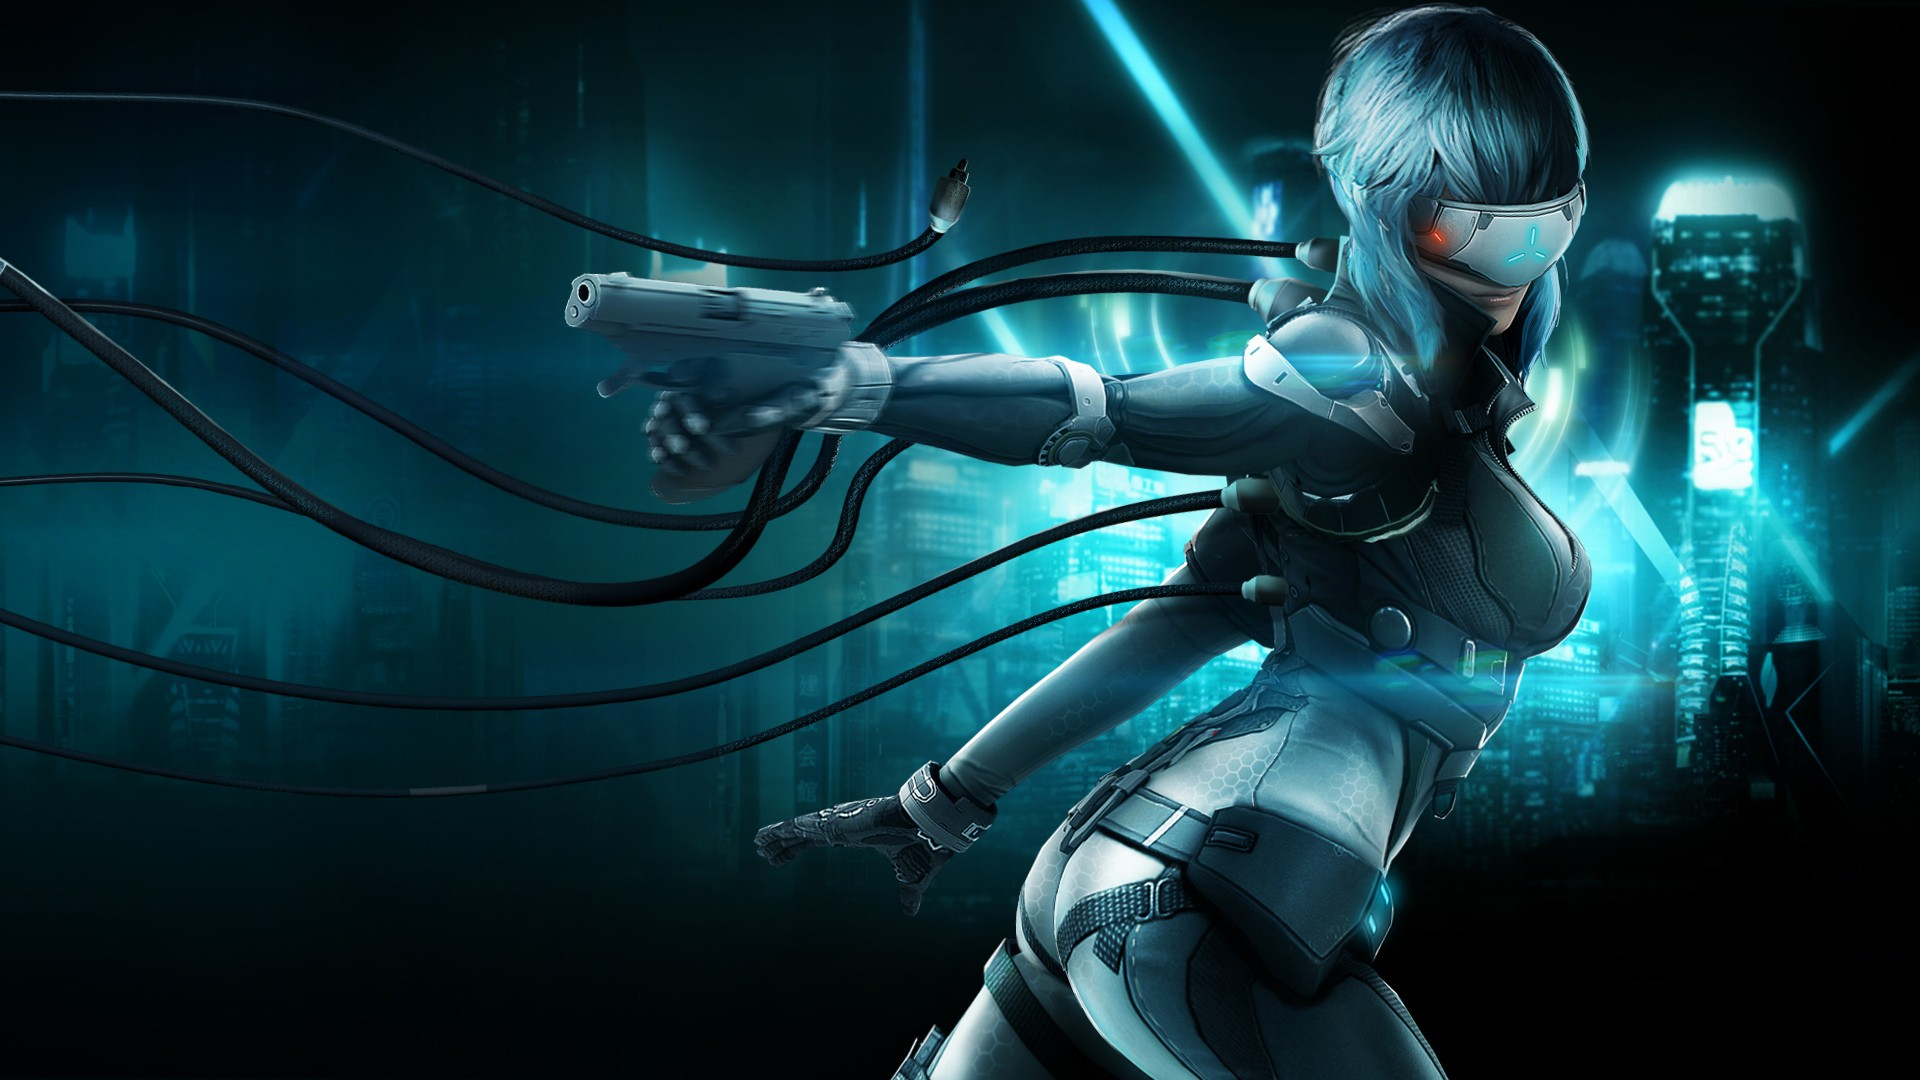 Ghost In The Shell Wallpaper Download Free Amazing Backgrounds